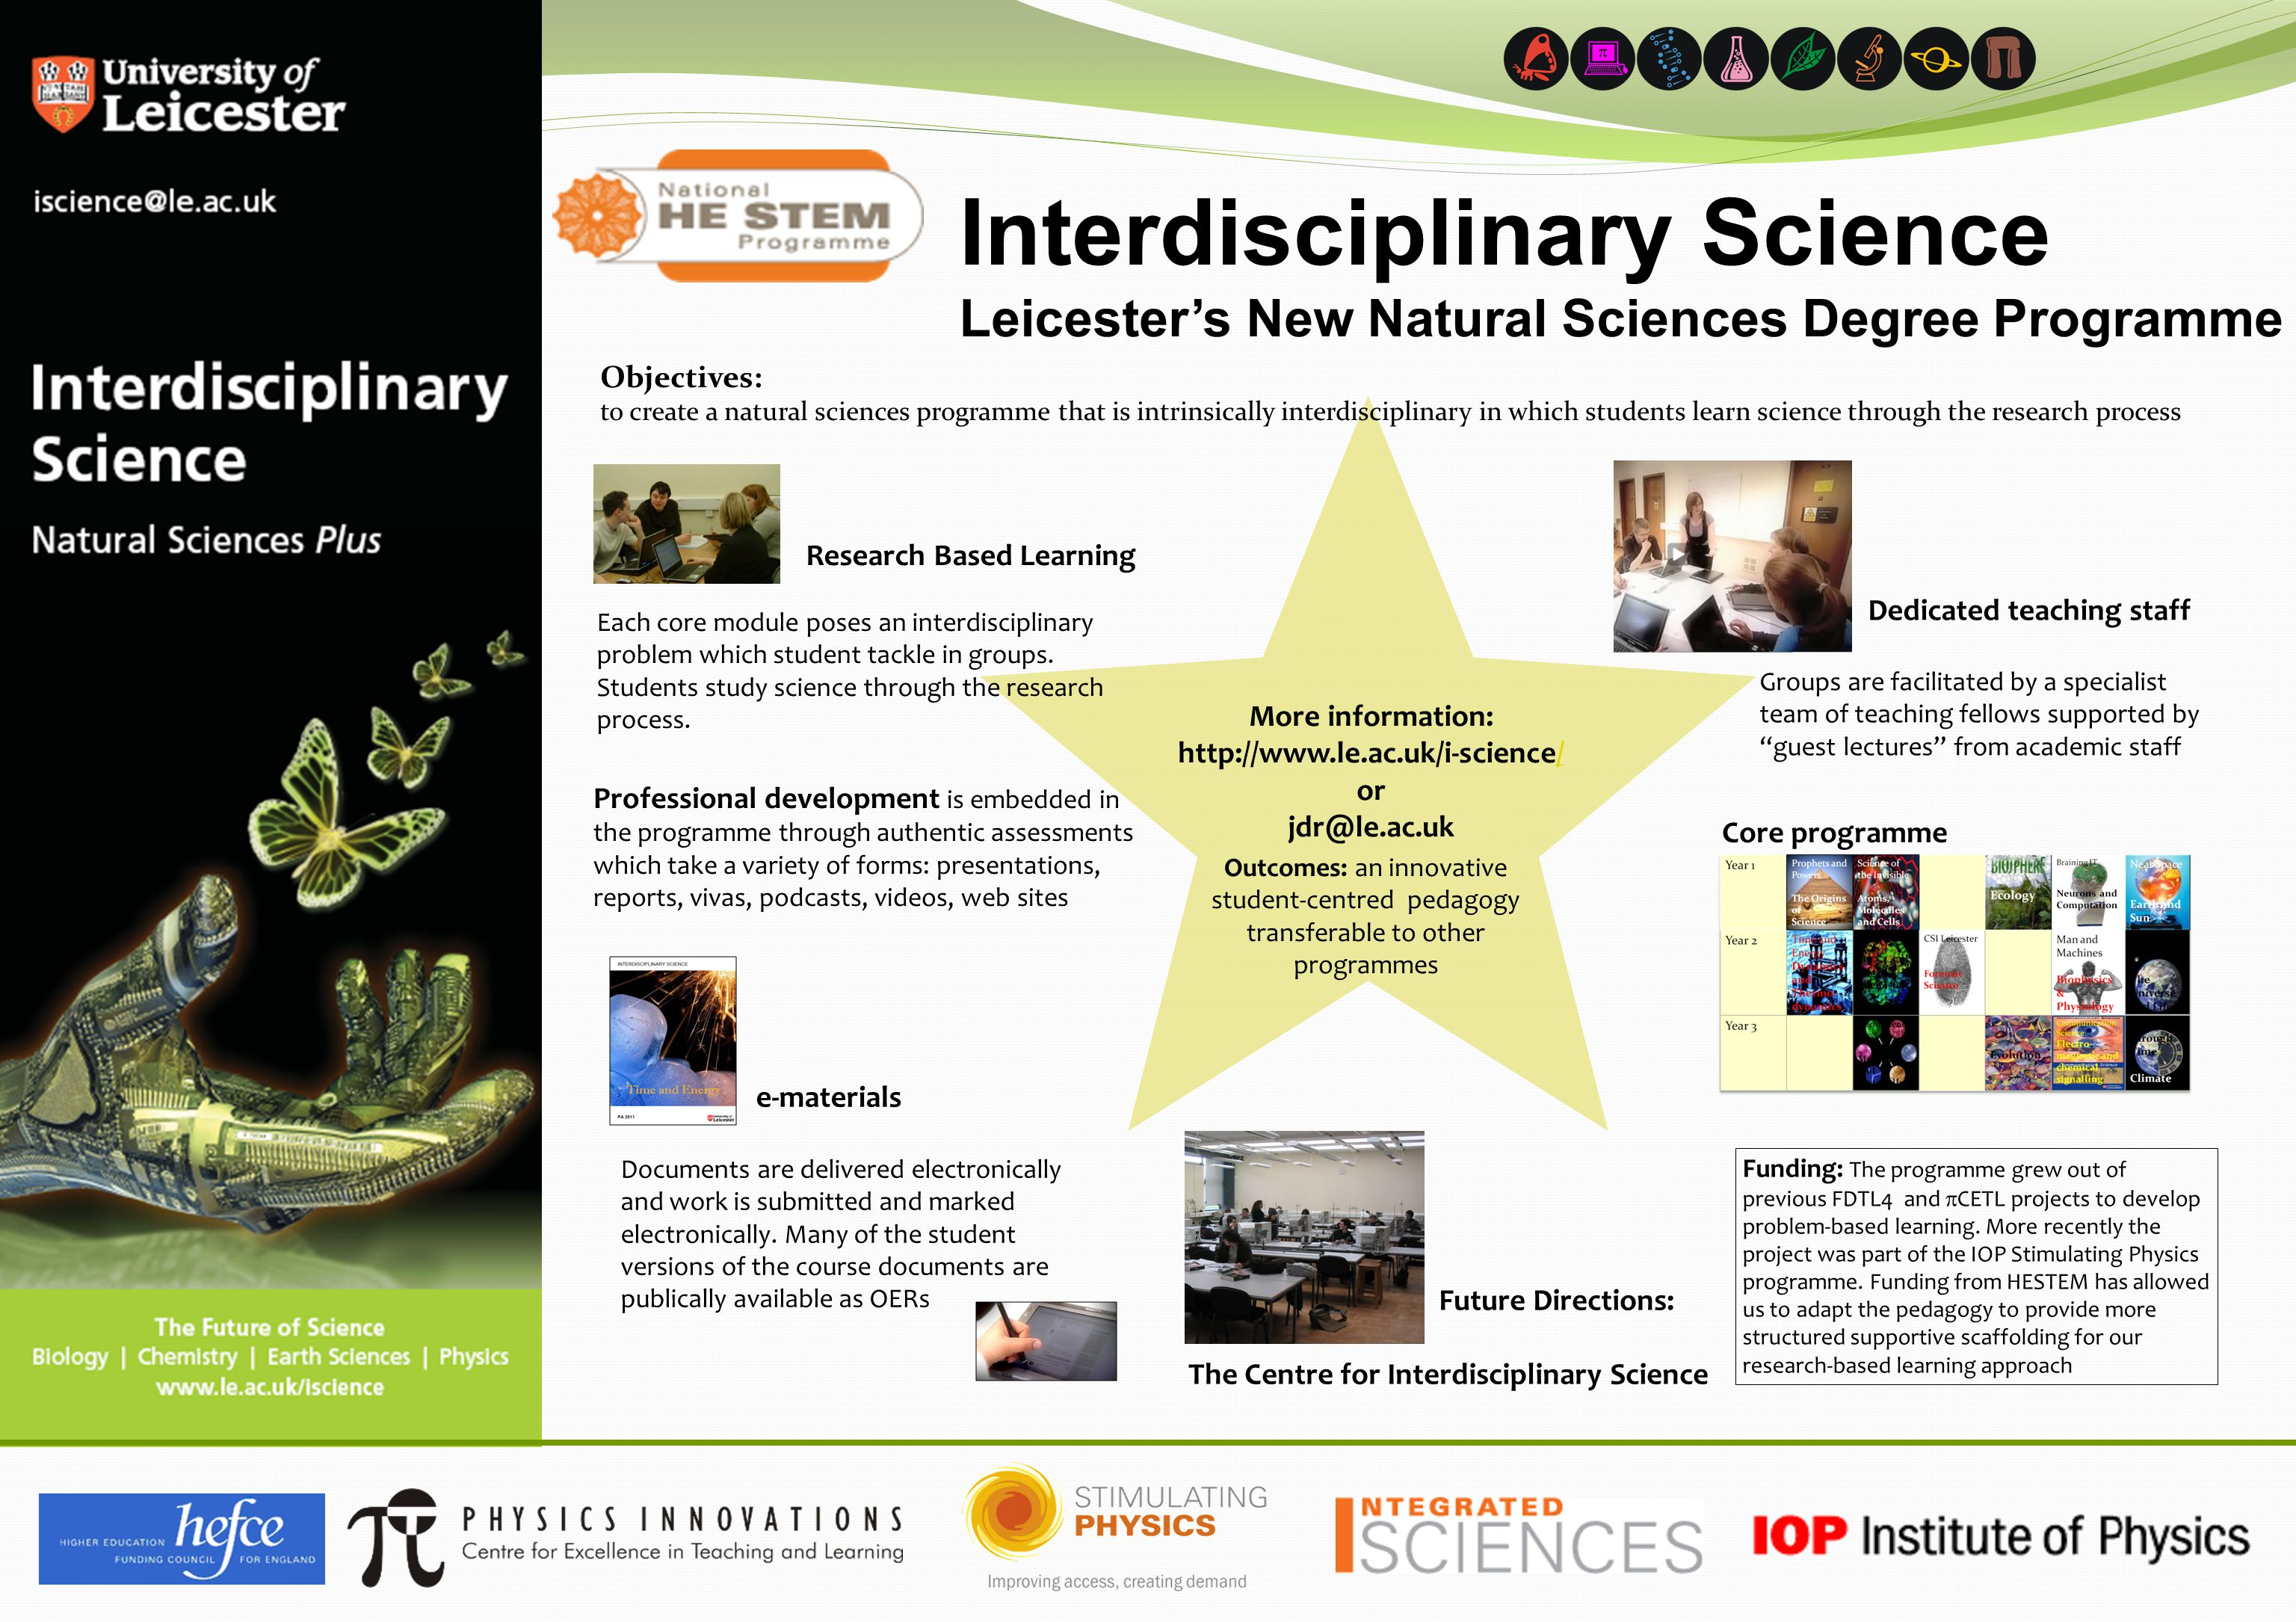 Interdisciplinary Science Leicester's New Natural Sciences Degree Programme More information: http://www.le.ac.uk/i-science// or jdr@le.ac.uk Objectives: to create a natural sciences programme that is intrinsically interdisciplinary in which students learn science through the research process e-materials Documents are delivered electronically and work is submitted and marked electronically.